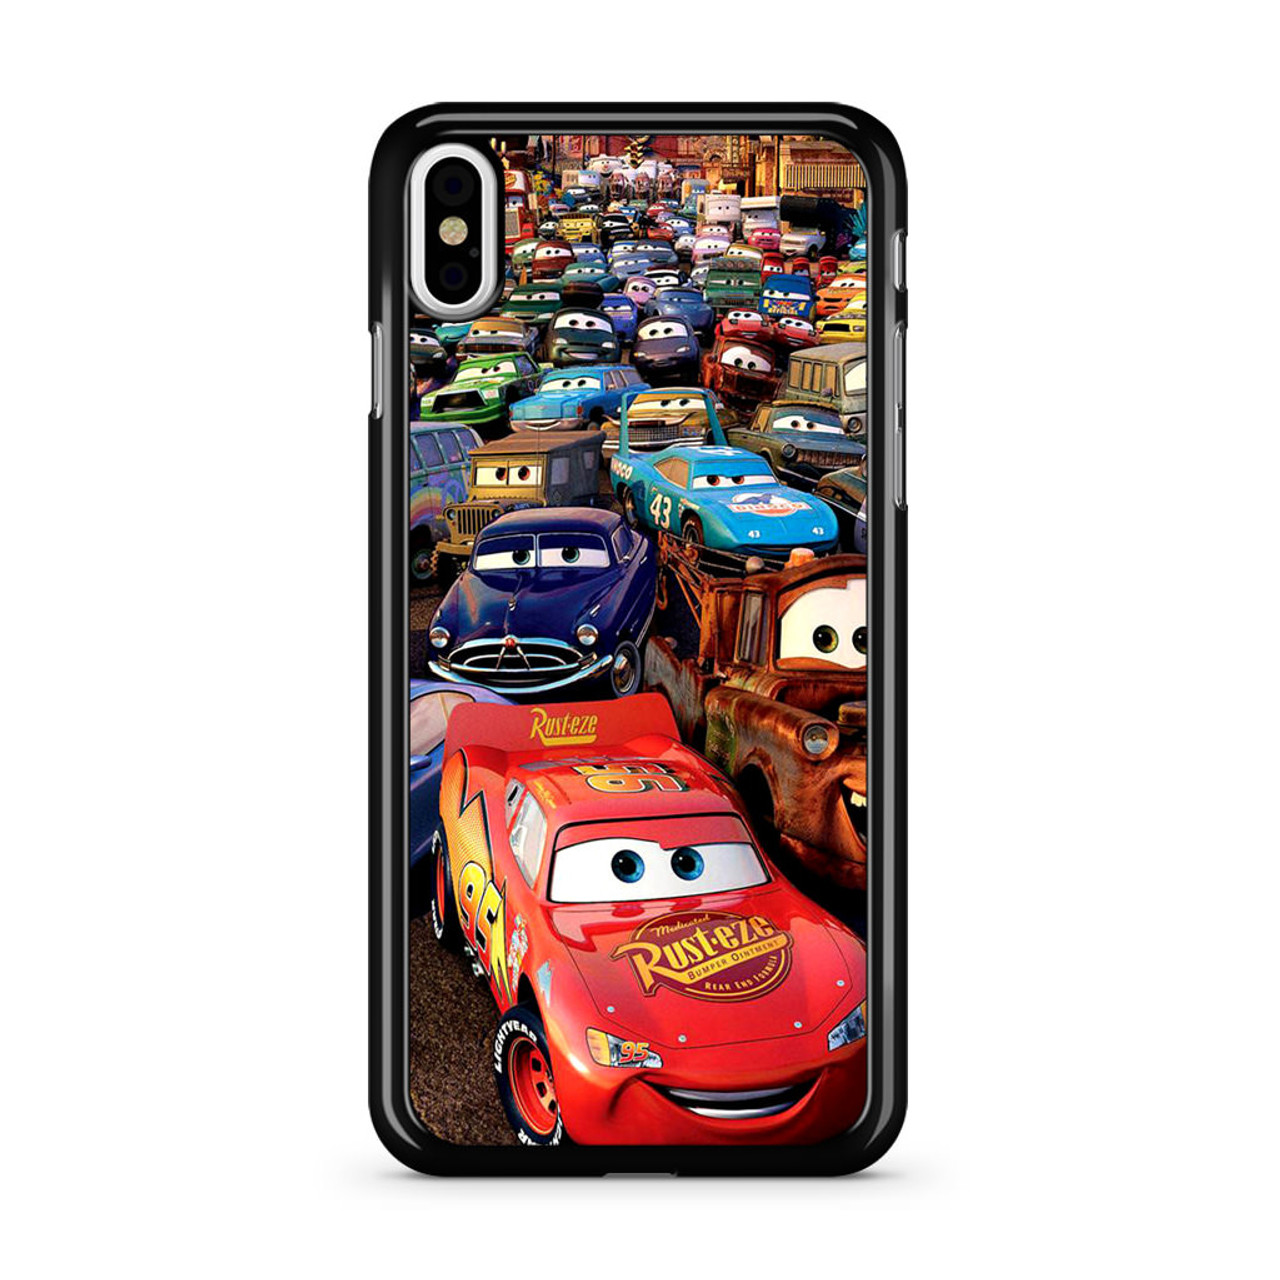 newest 9fdcf c1bfd Lightning McQueen Disney Cars iPhone X Case